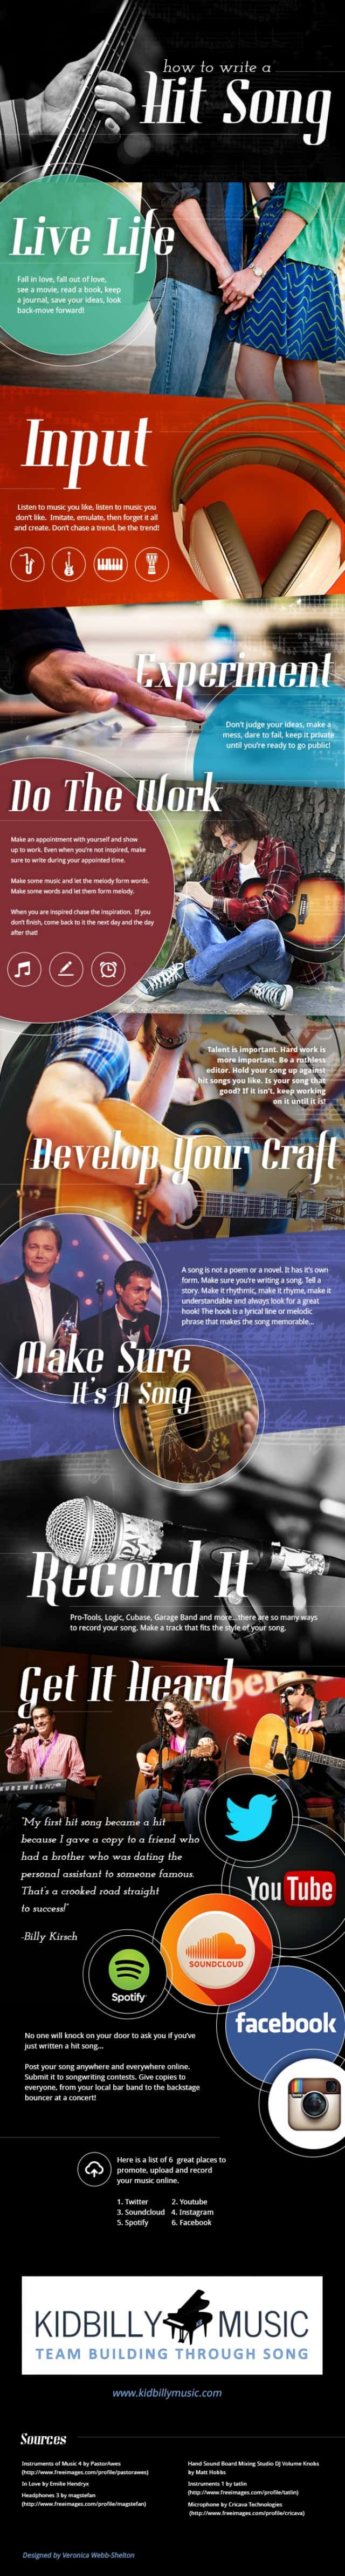 how-to-write-a-hit-song_53bf051303bb8_w1500